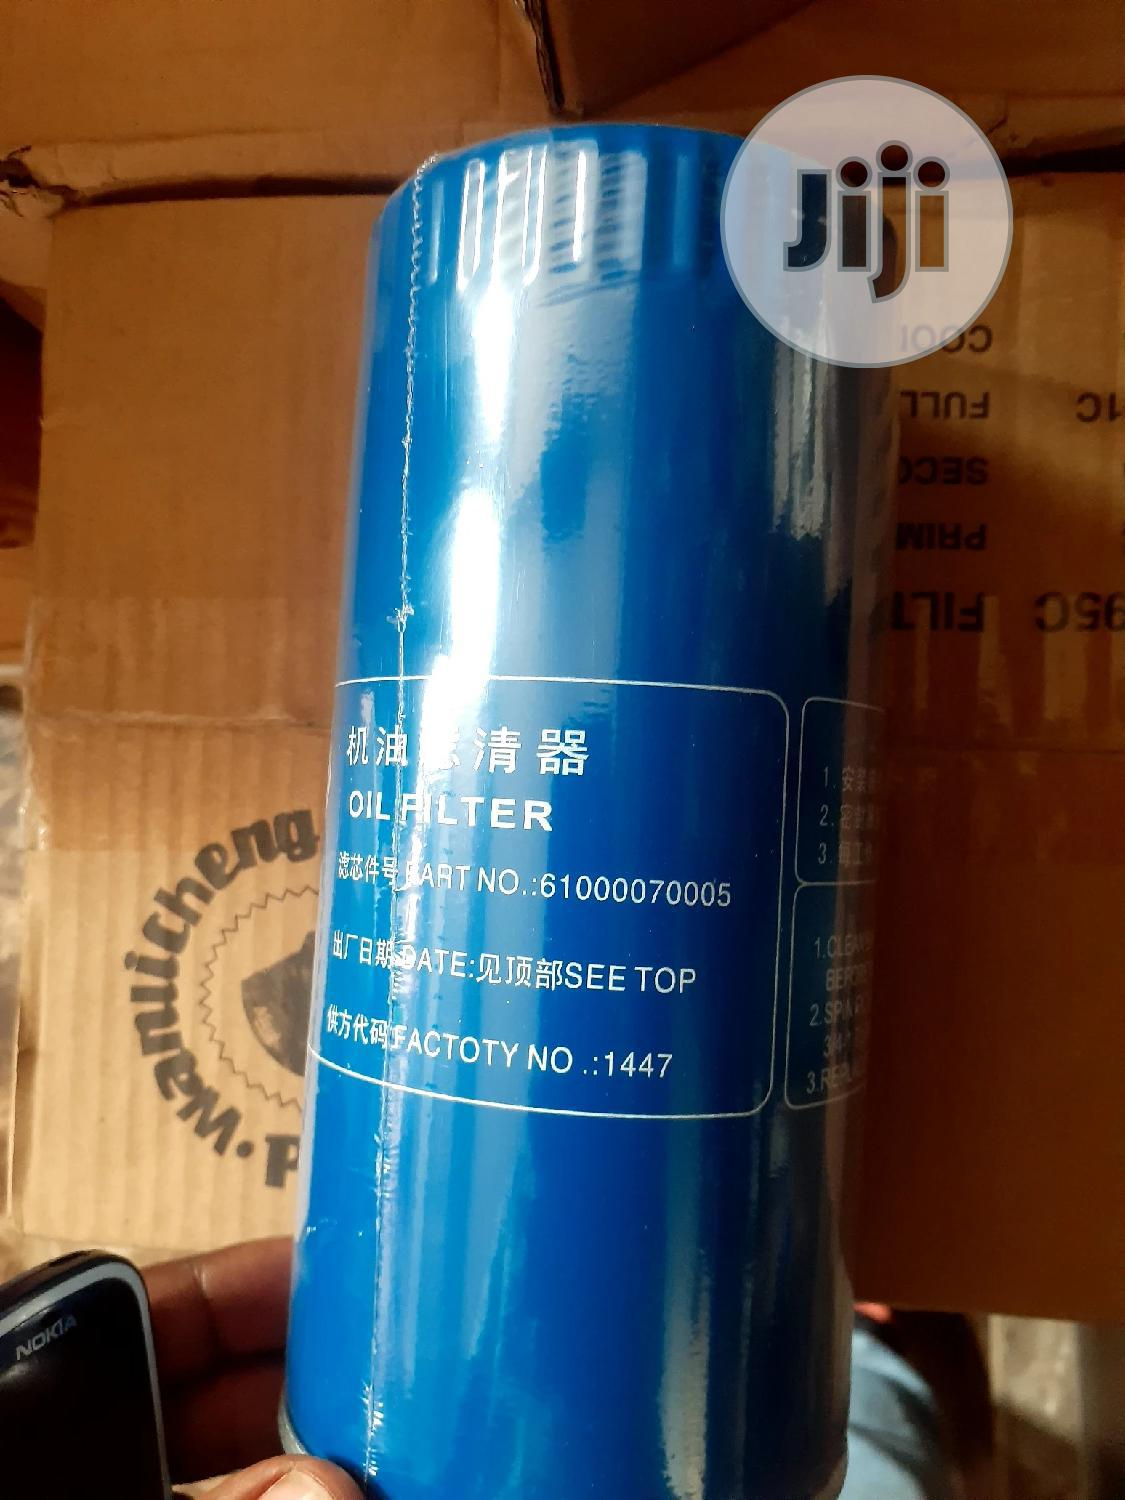 China Truck Engine Oil Filter | Vehicle Parts & Accessories for sale in Amuwo-Odofin, Lagos State, Nigeria